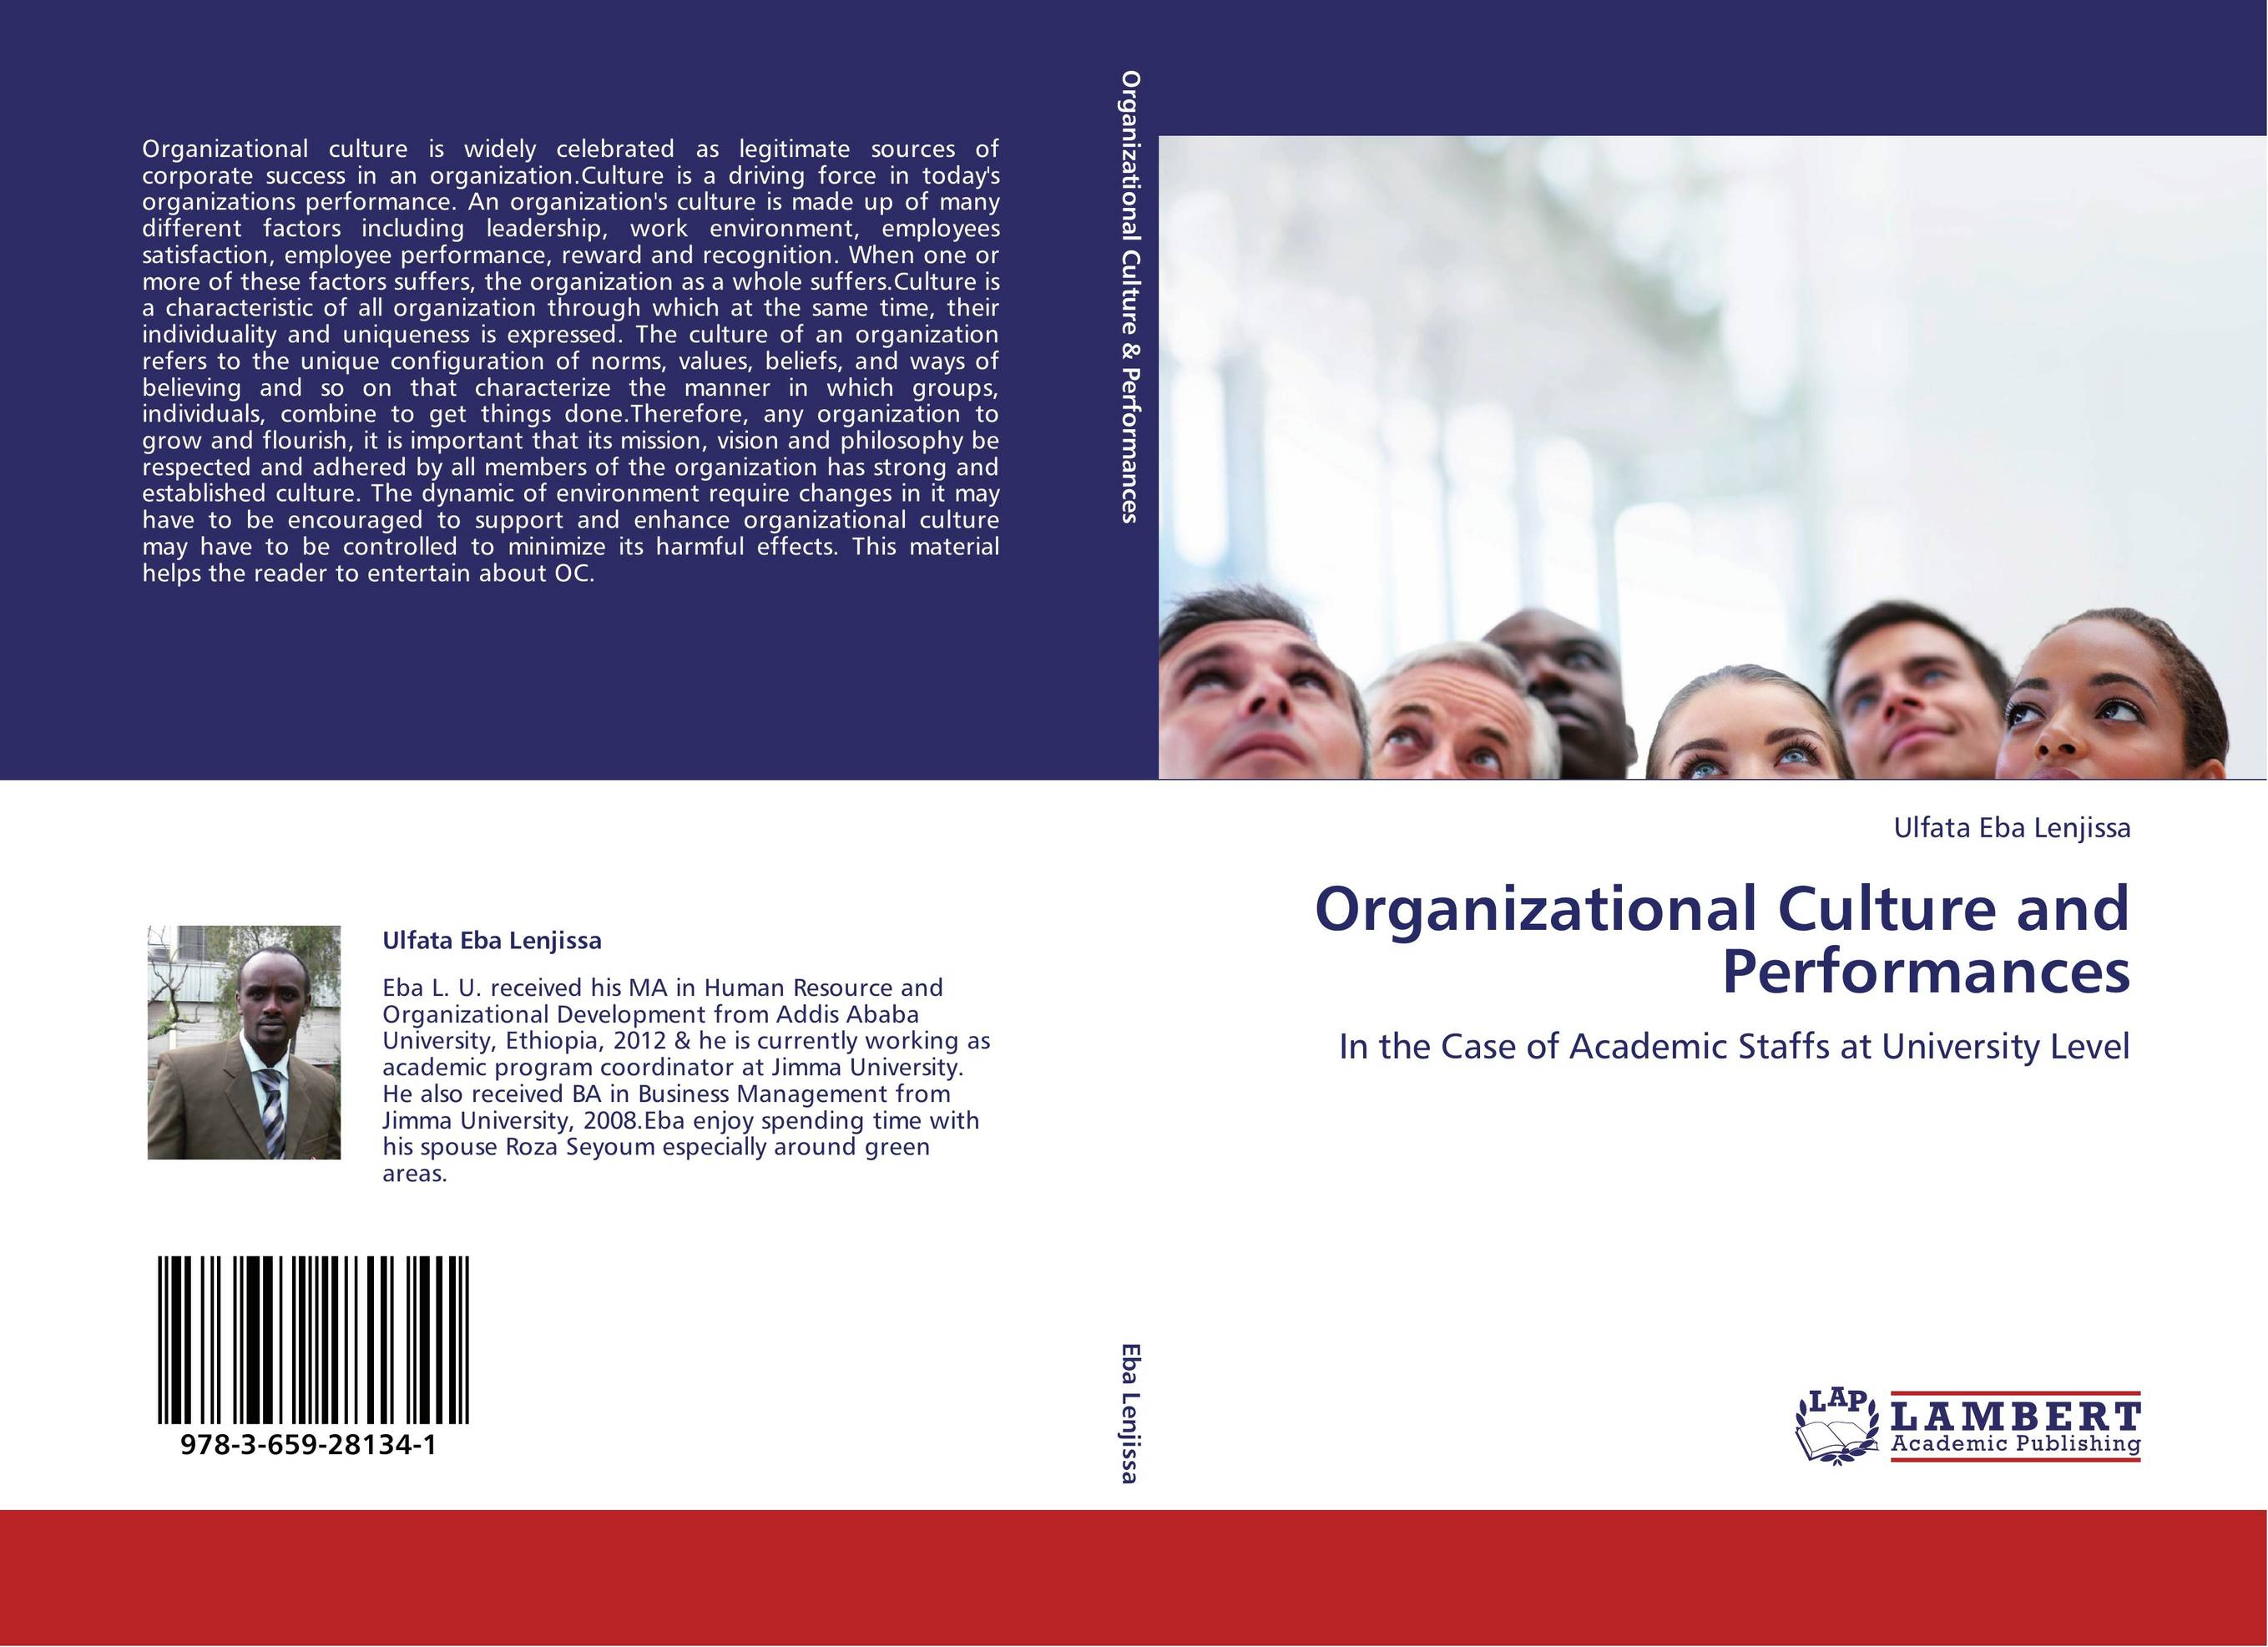 organizational culture and performance The strength of corporate culture and the reliability of firm performance how do strong corporate cultures affect firm performance much popular and scholarly attention.